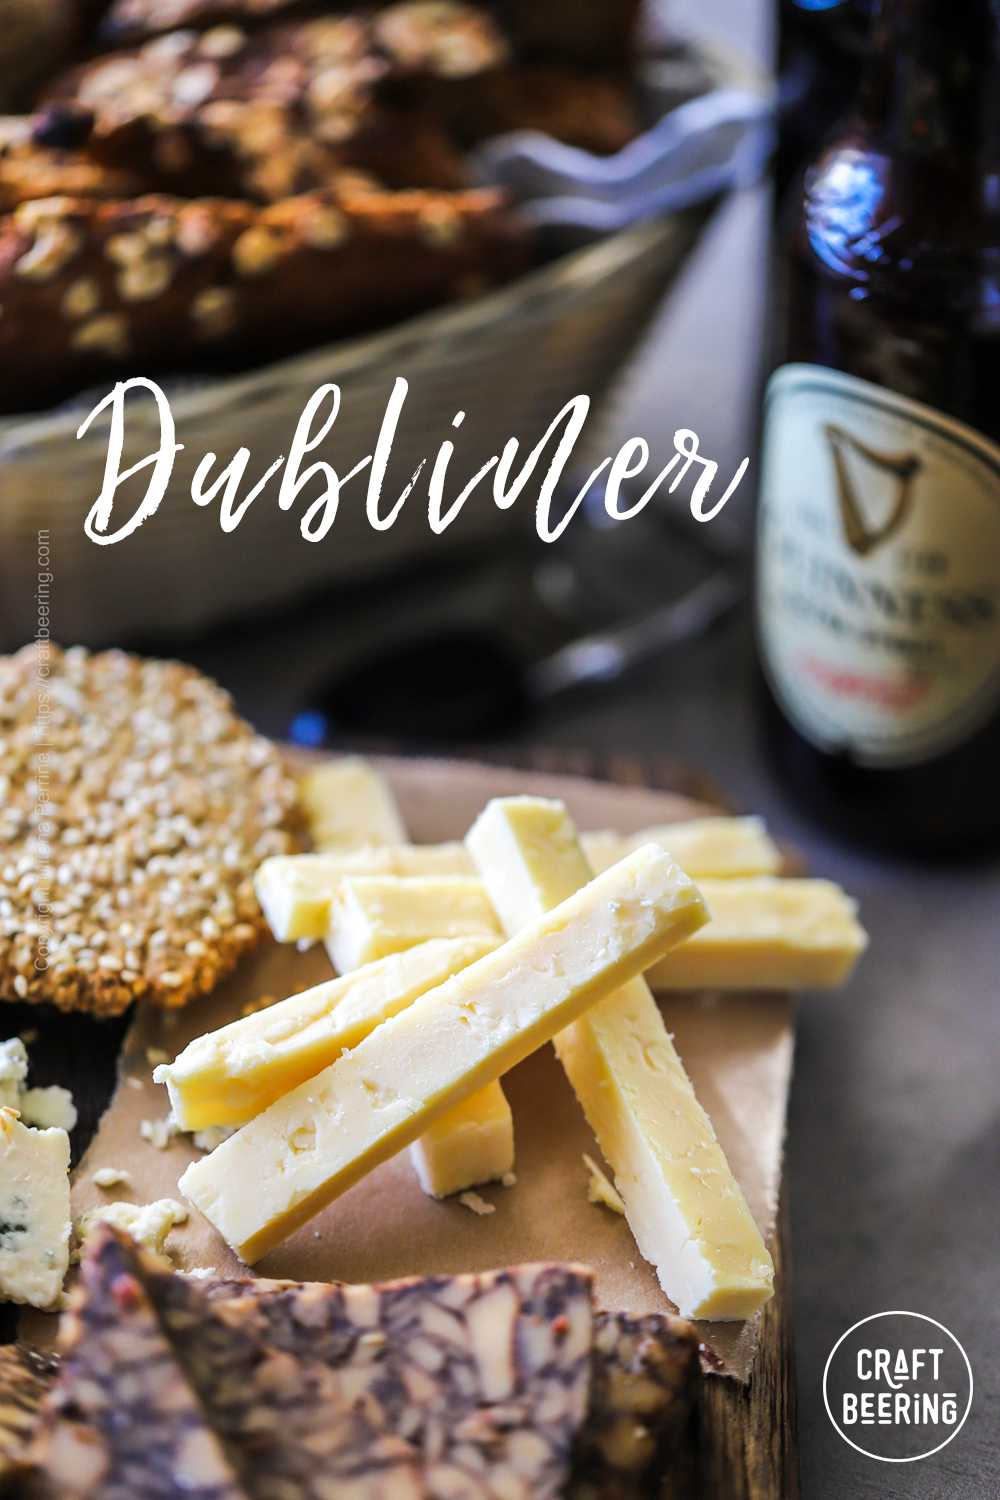 Dubliner - and Irish hard cheese from cow's milk with a firm and smooth texture and sharp, simultaneously nutty and sweet flavor.